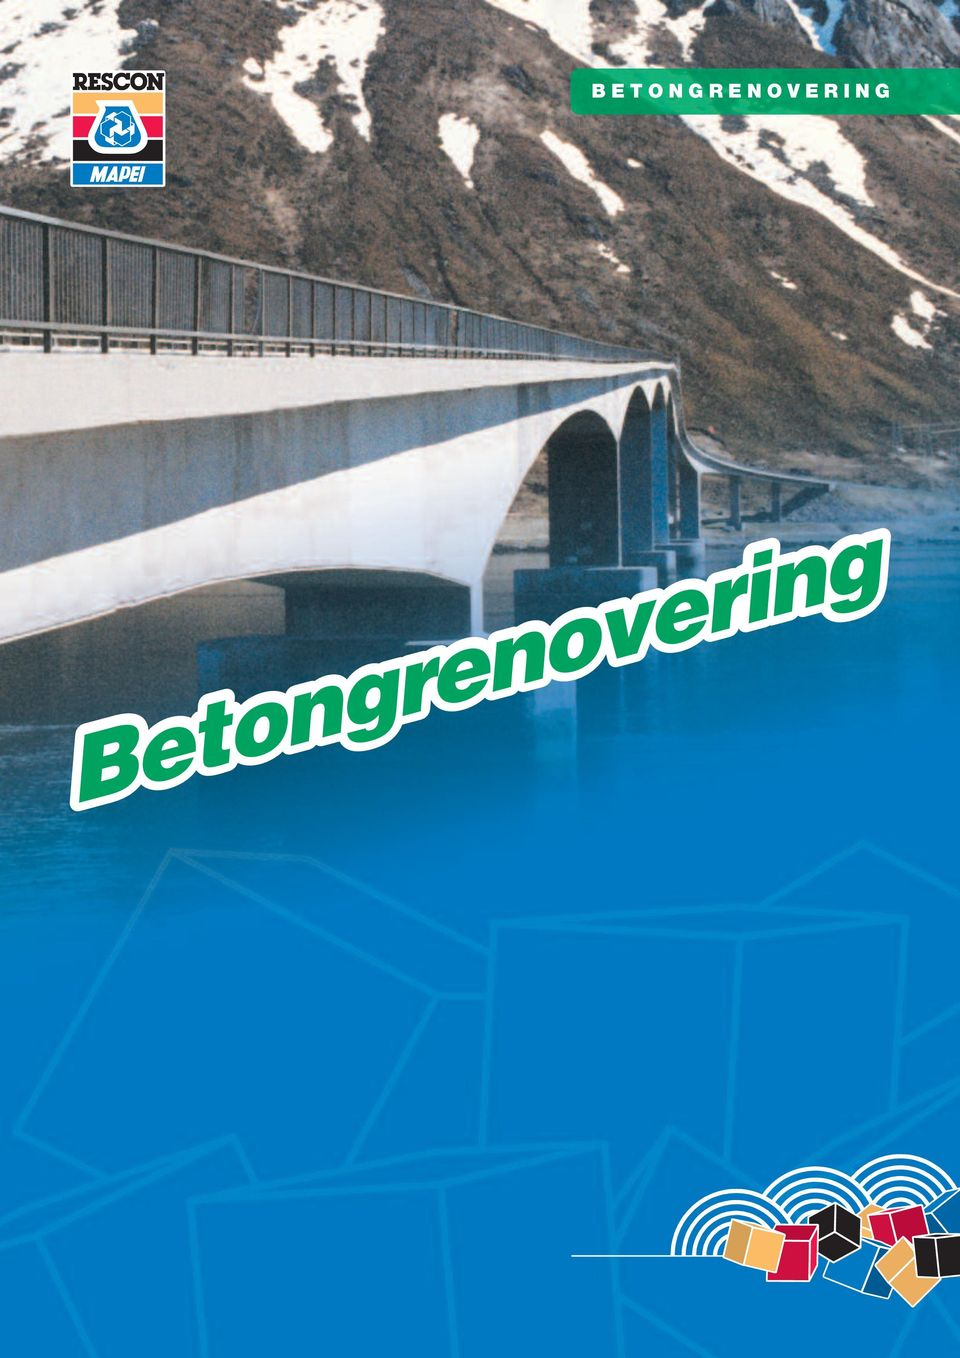 Betongrenovering